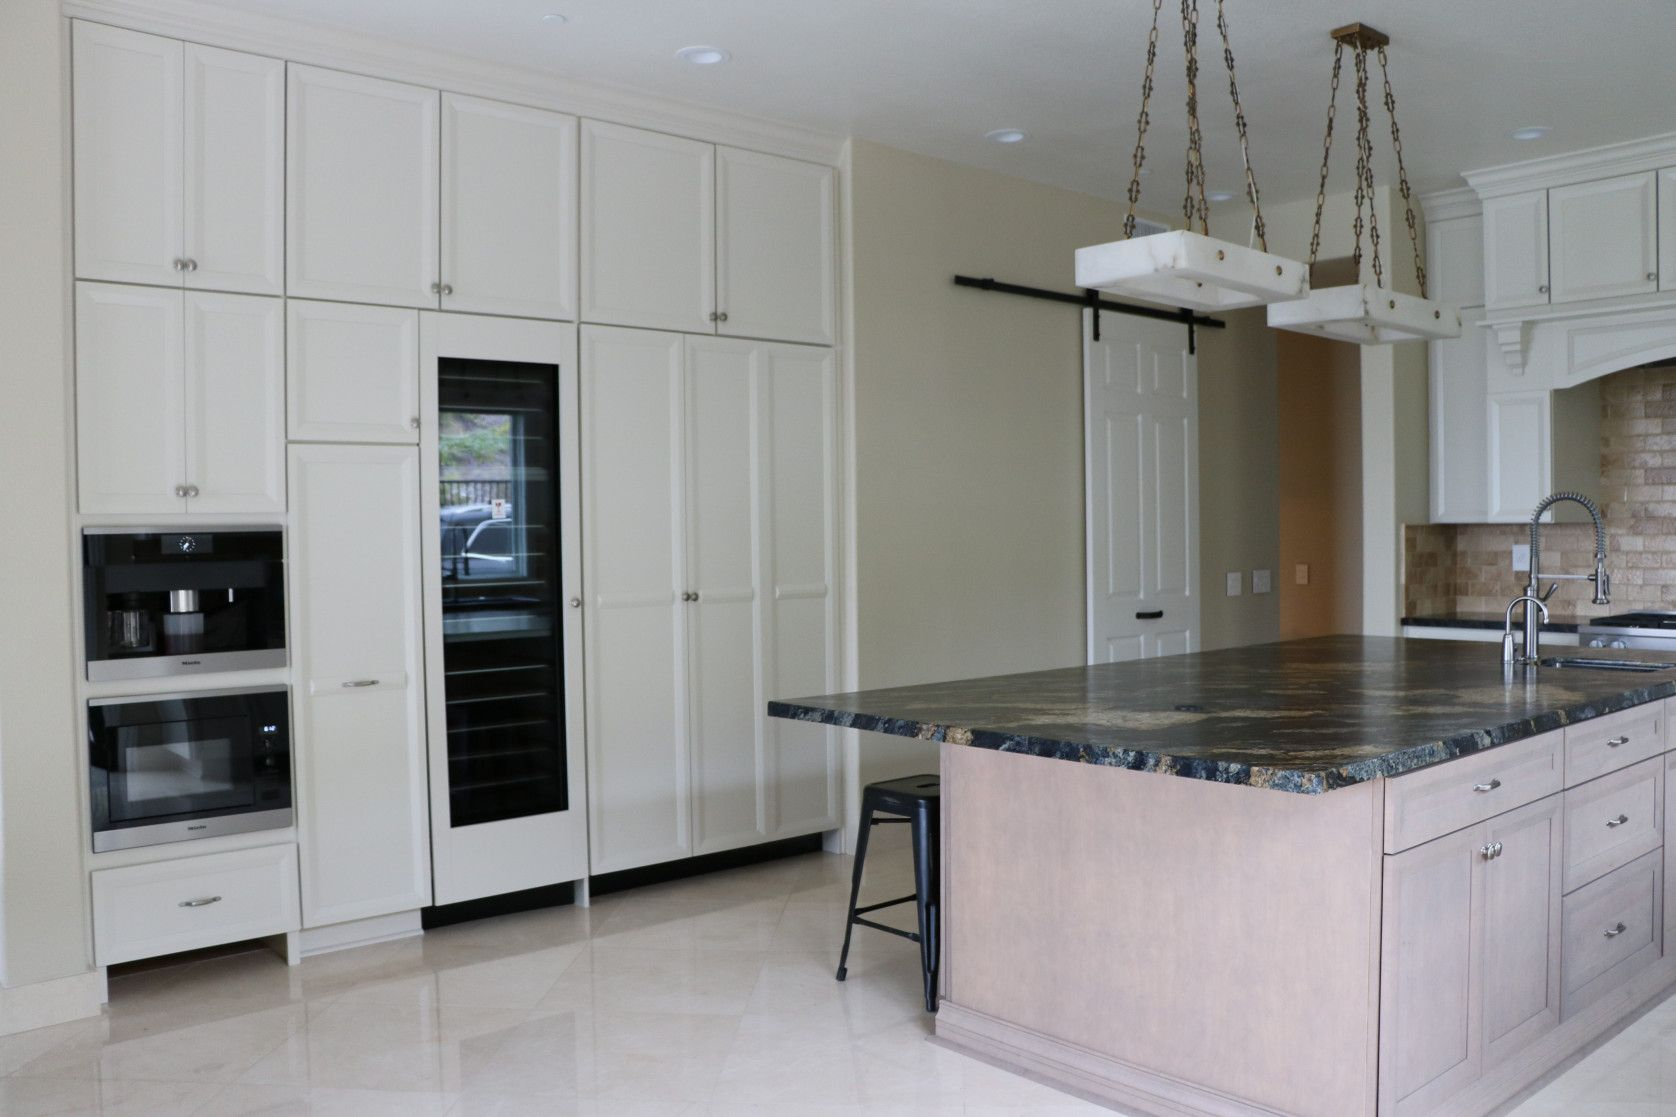 70+ Kitchen Cabinets In Orange County Ca   Kitchen Decor Theme Ideas Check  More At